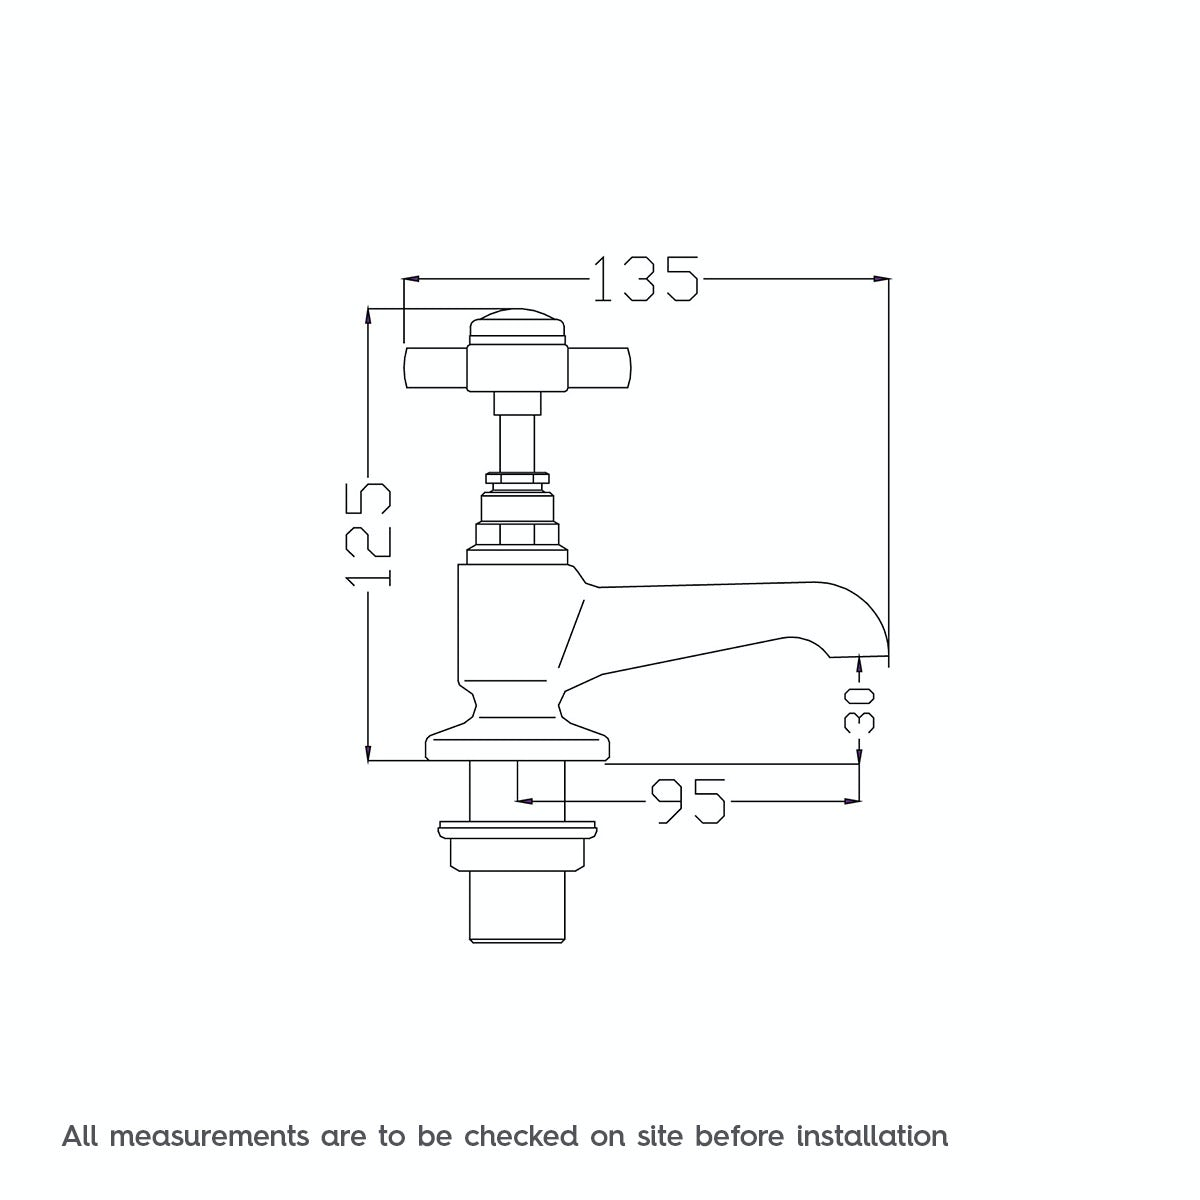 Dimensions for The Bath Co. Dulwich bath pillar taps